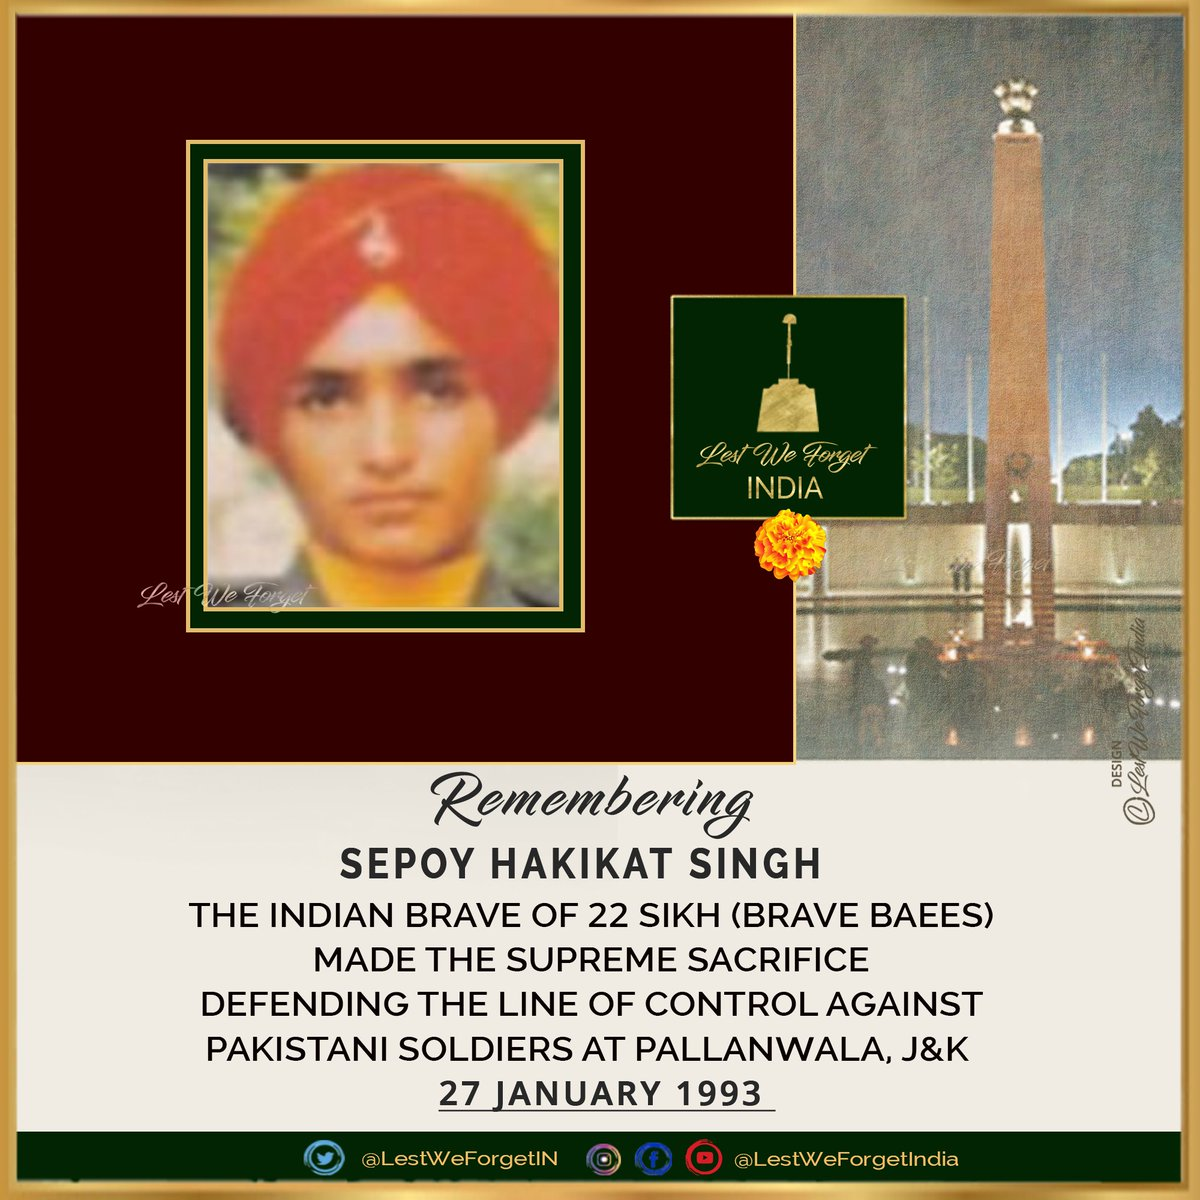 TWENTY EIGHT years ago this young #IndianBrave made the supreme sacrifice defending the Nation.  #LestWeForgetIndia🇮🇳 Sepoy Hakikat Singh, 22 SIKH, fell fighting braving enemy soldiers at the LoC at Pallanwala, J&K #OnThisDay 27 January in 1993  Remember his service & sacrifice🏵️